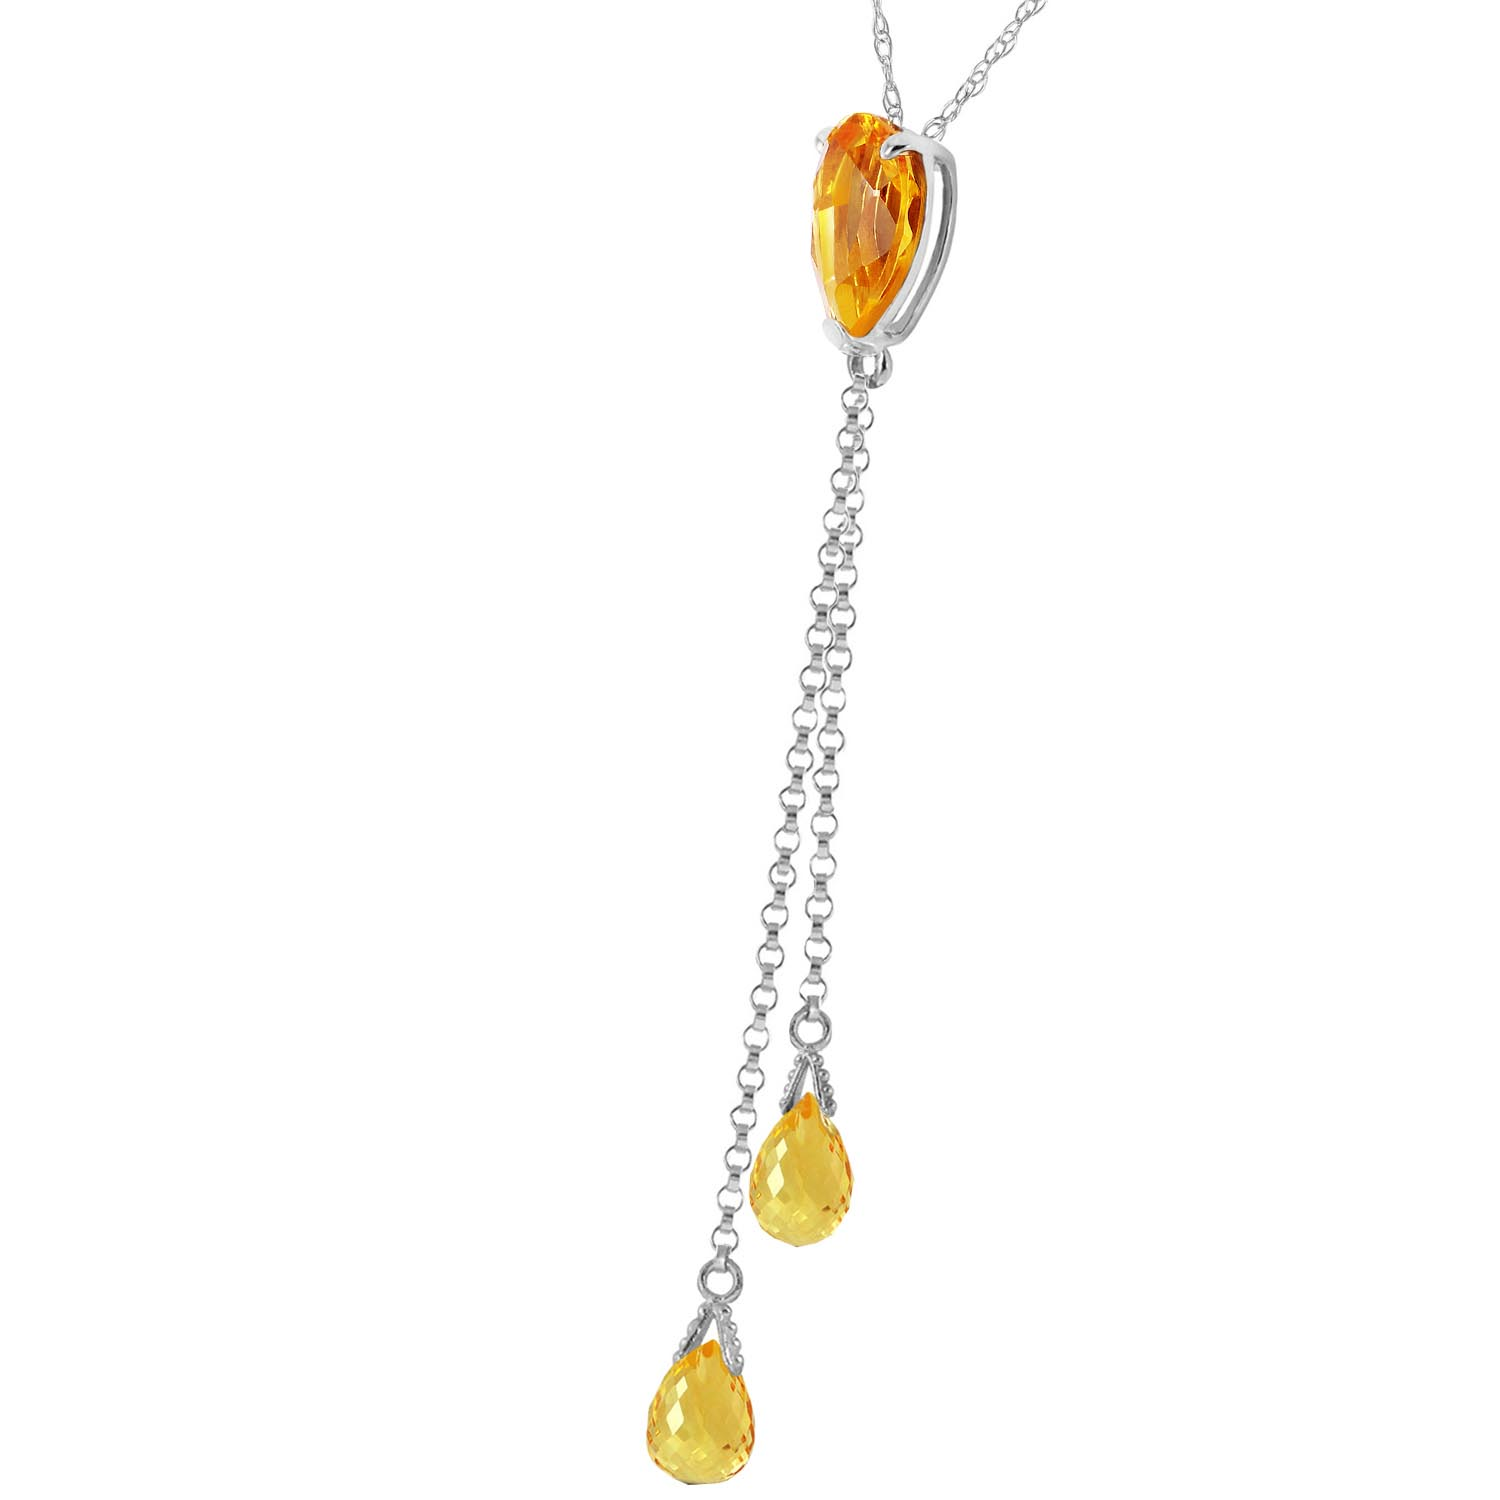 Citrine Droplet Pendant Necklace 3.75ctw in 9ct White Gold